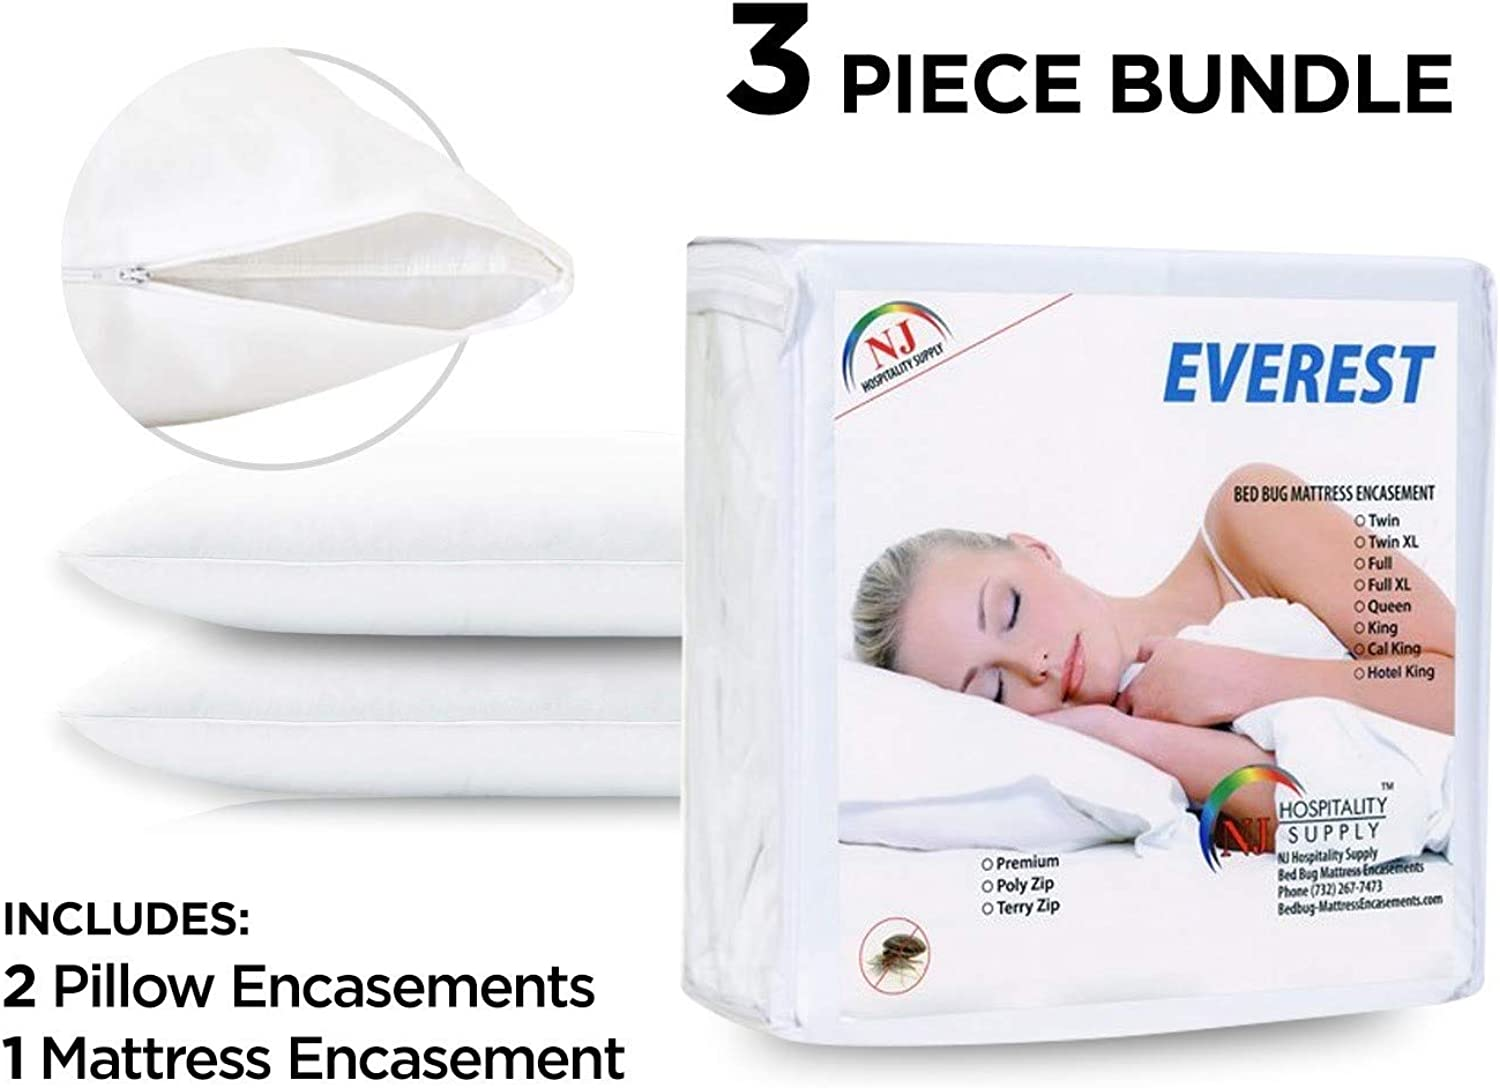 Everest Supply Premium Queen Size Encasement + 2 Standard Size Pillow Predectors (Bundle Deal, Queen Size 60x80+9  (fits 9-11  Depth)